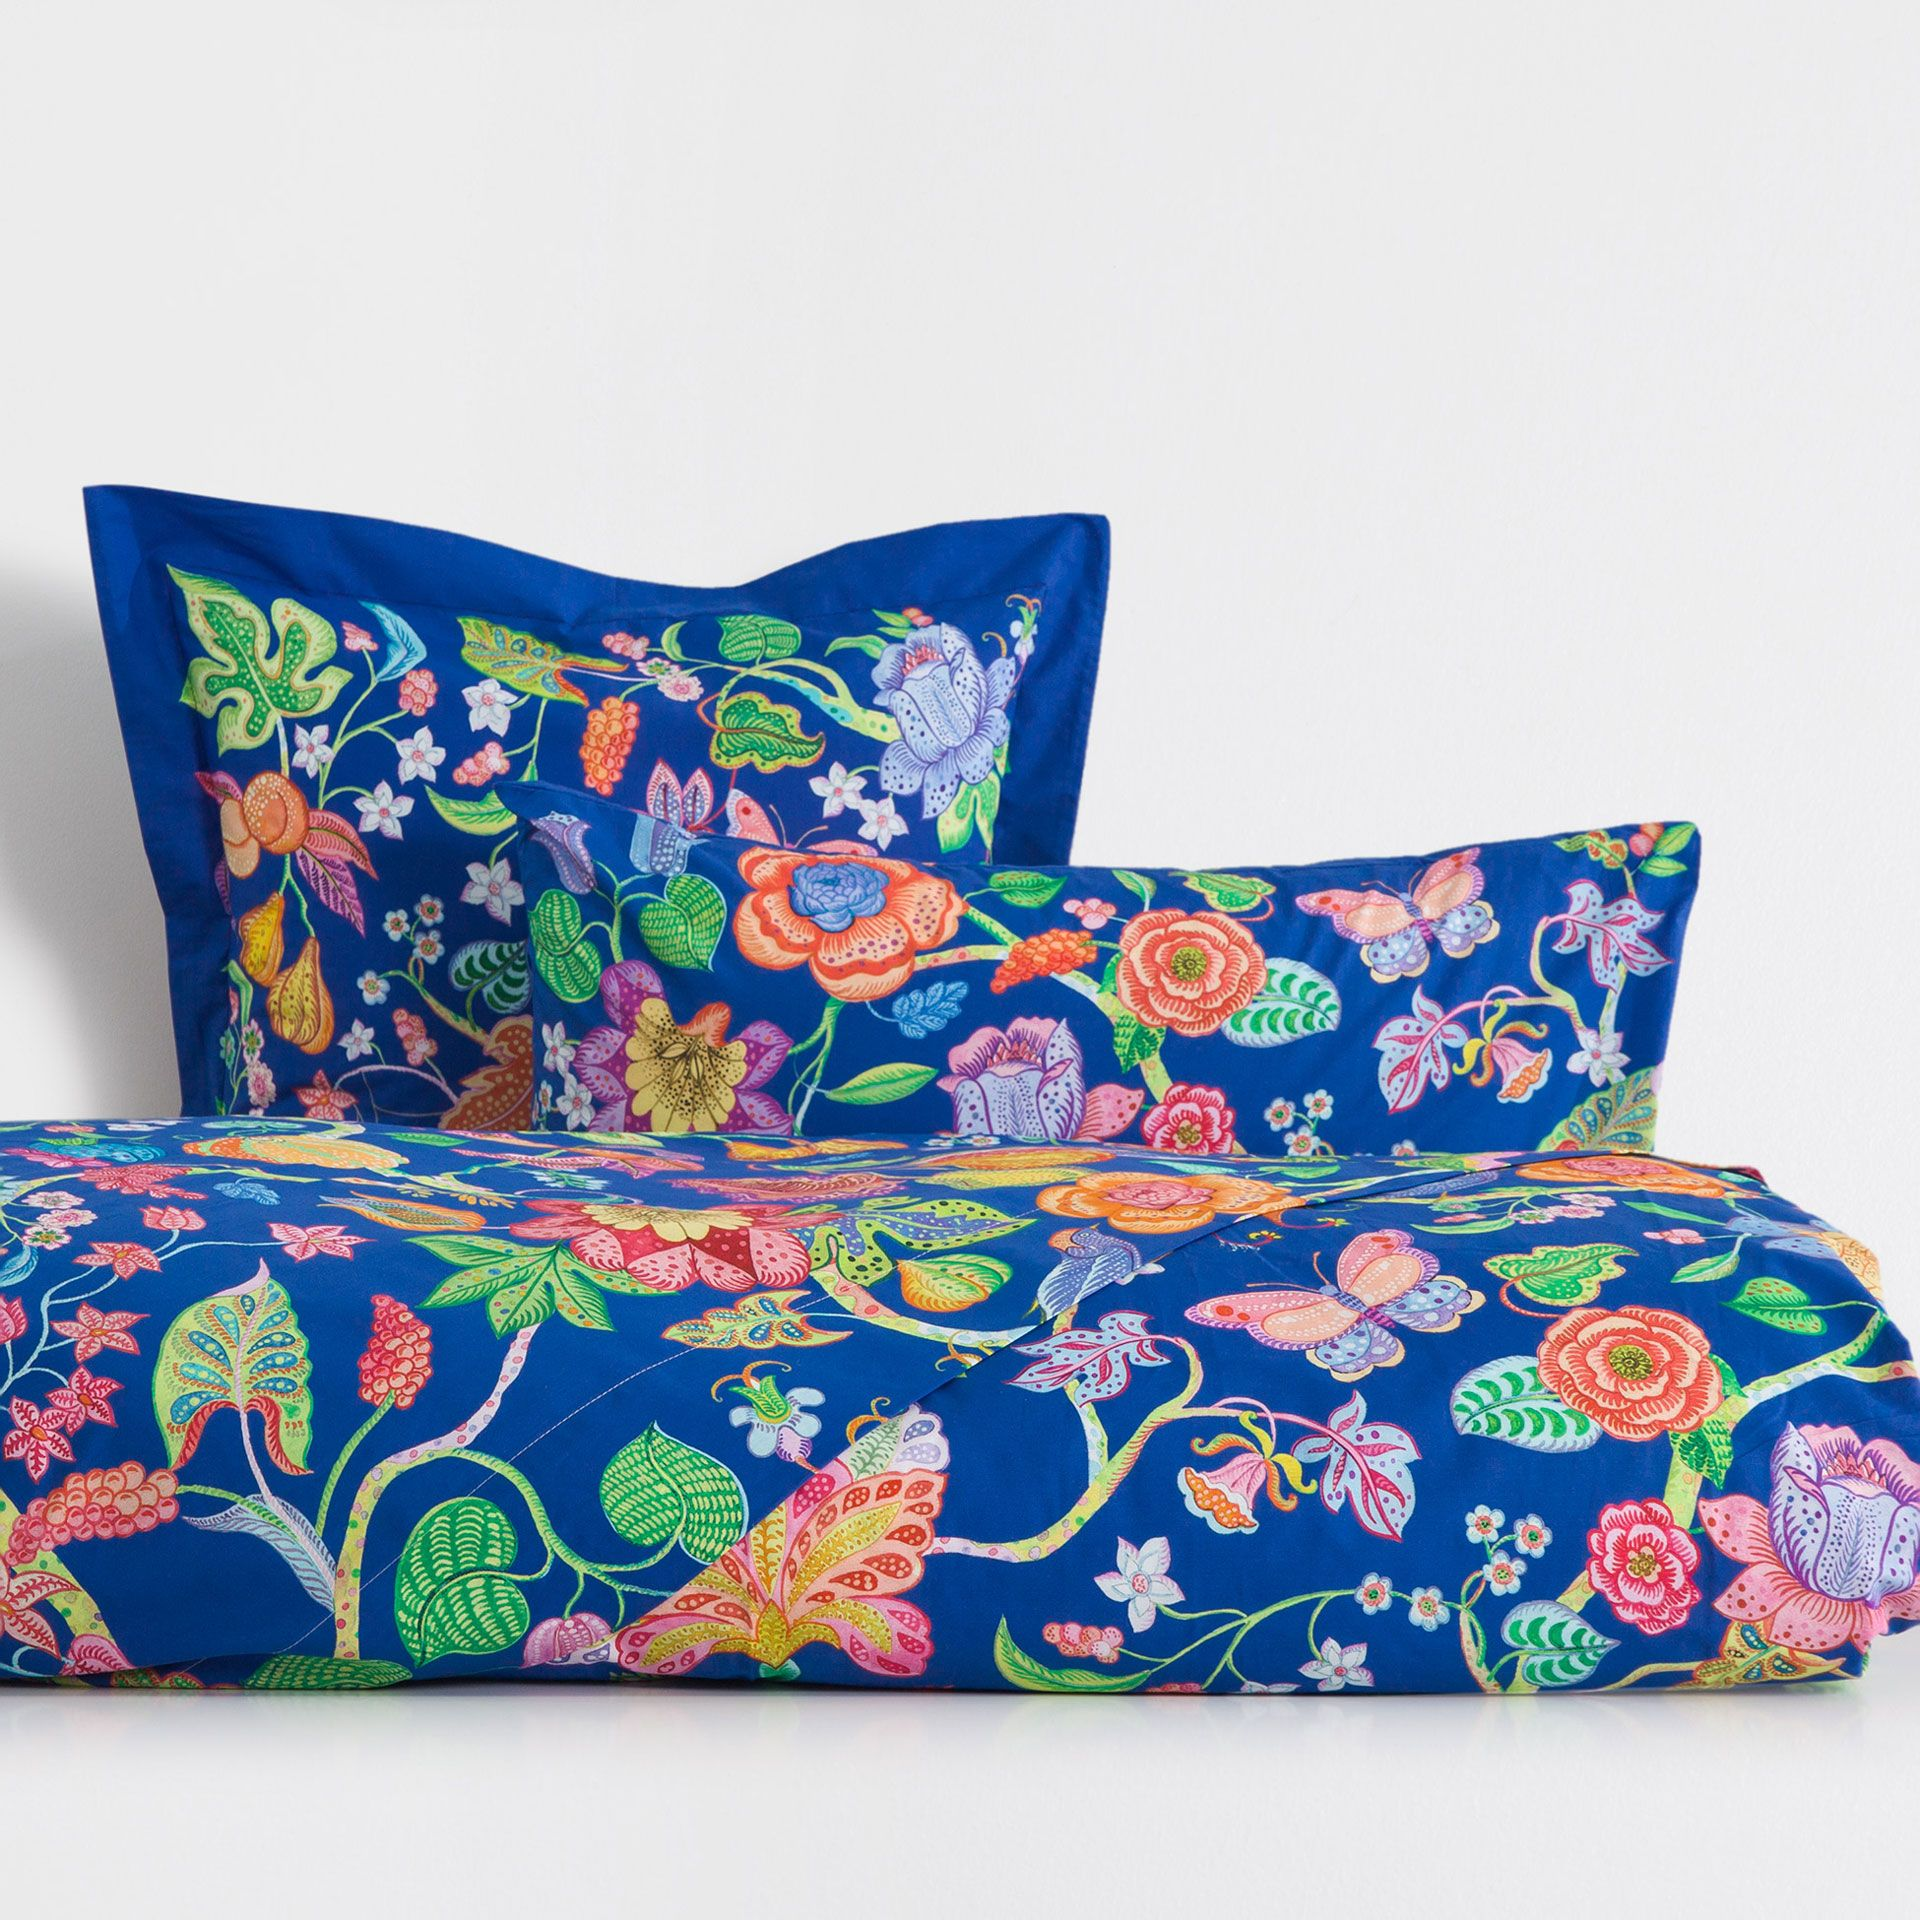 Image 1 of the product Blue Digital Print Duvet Cover